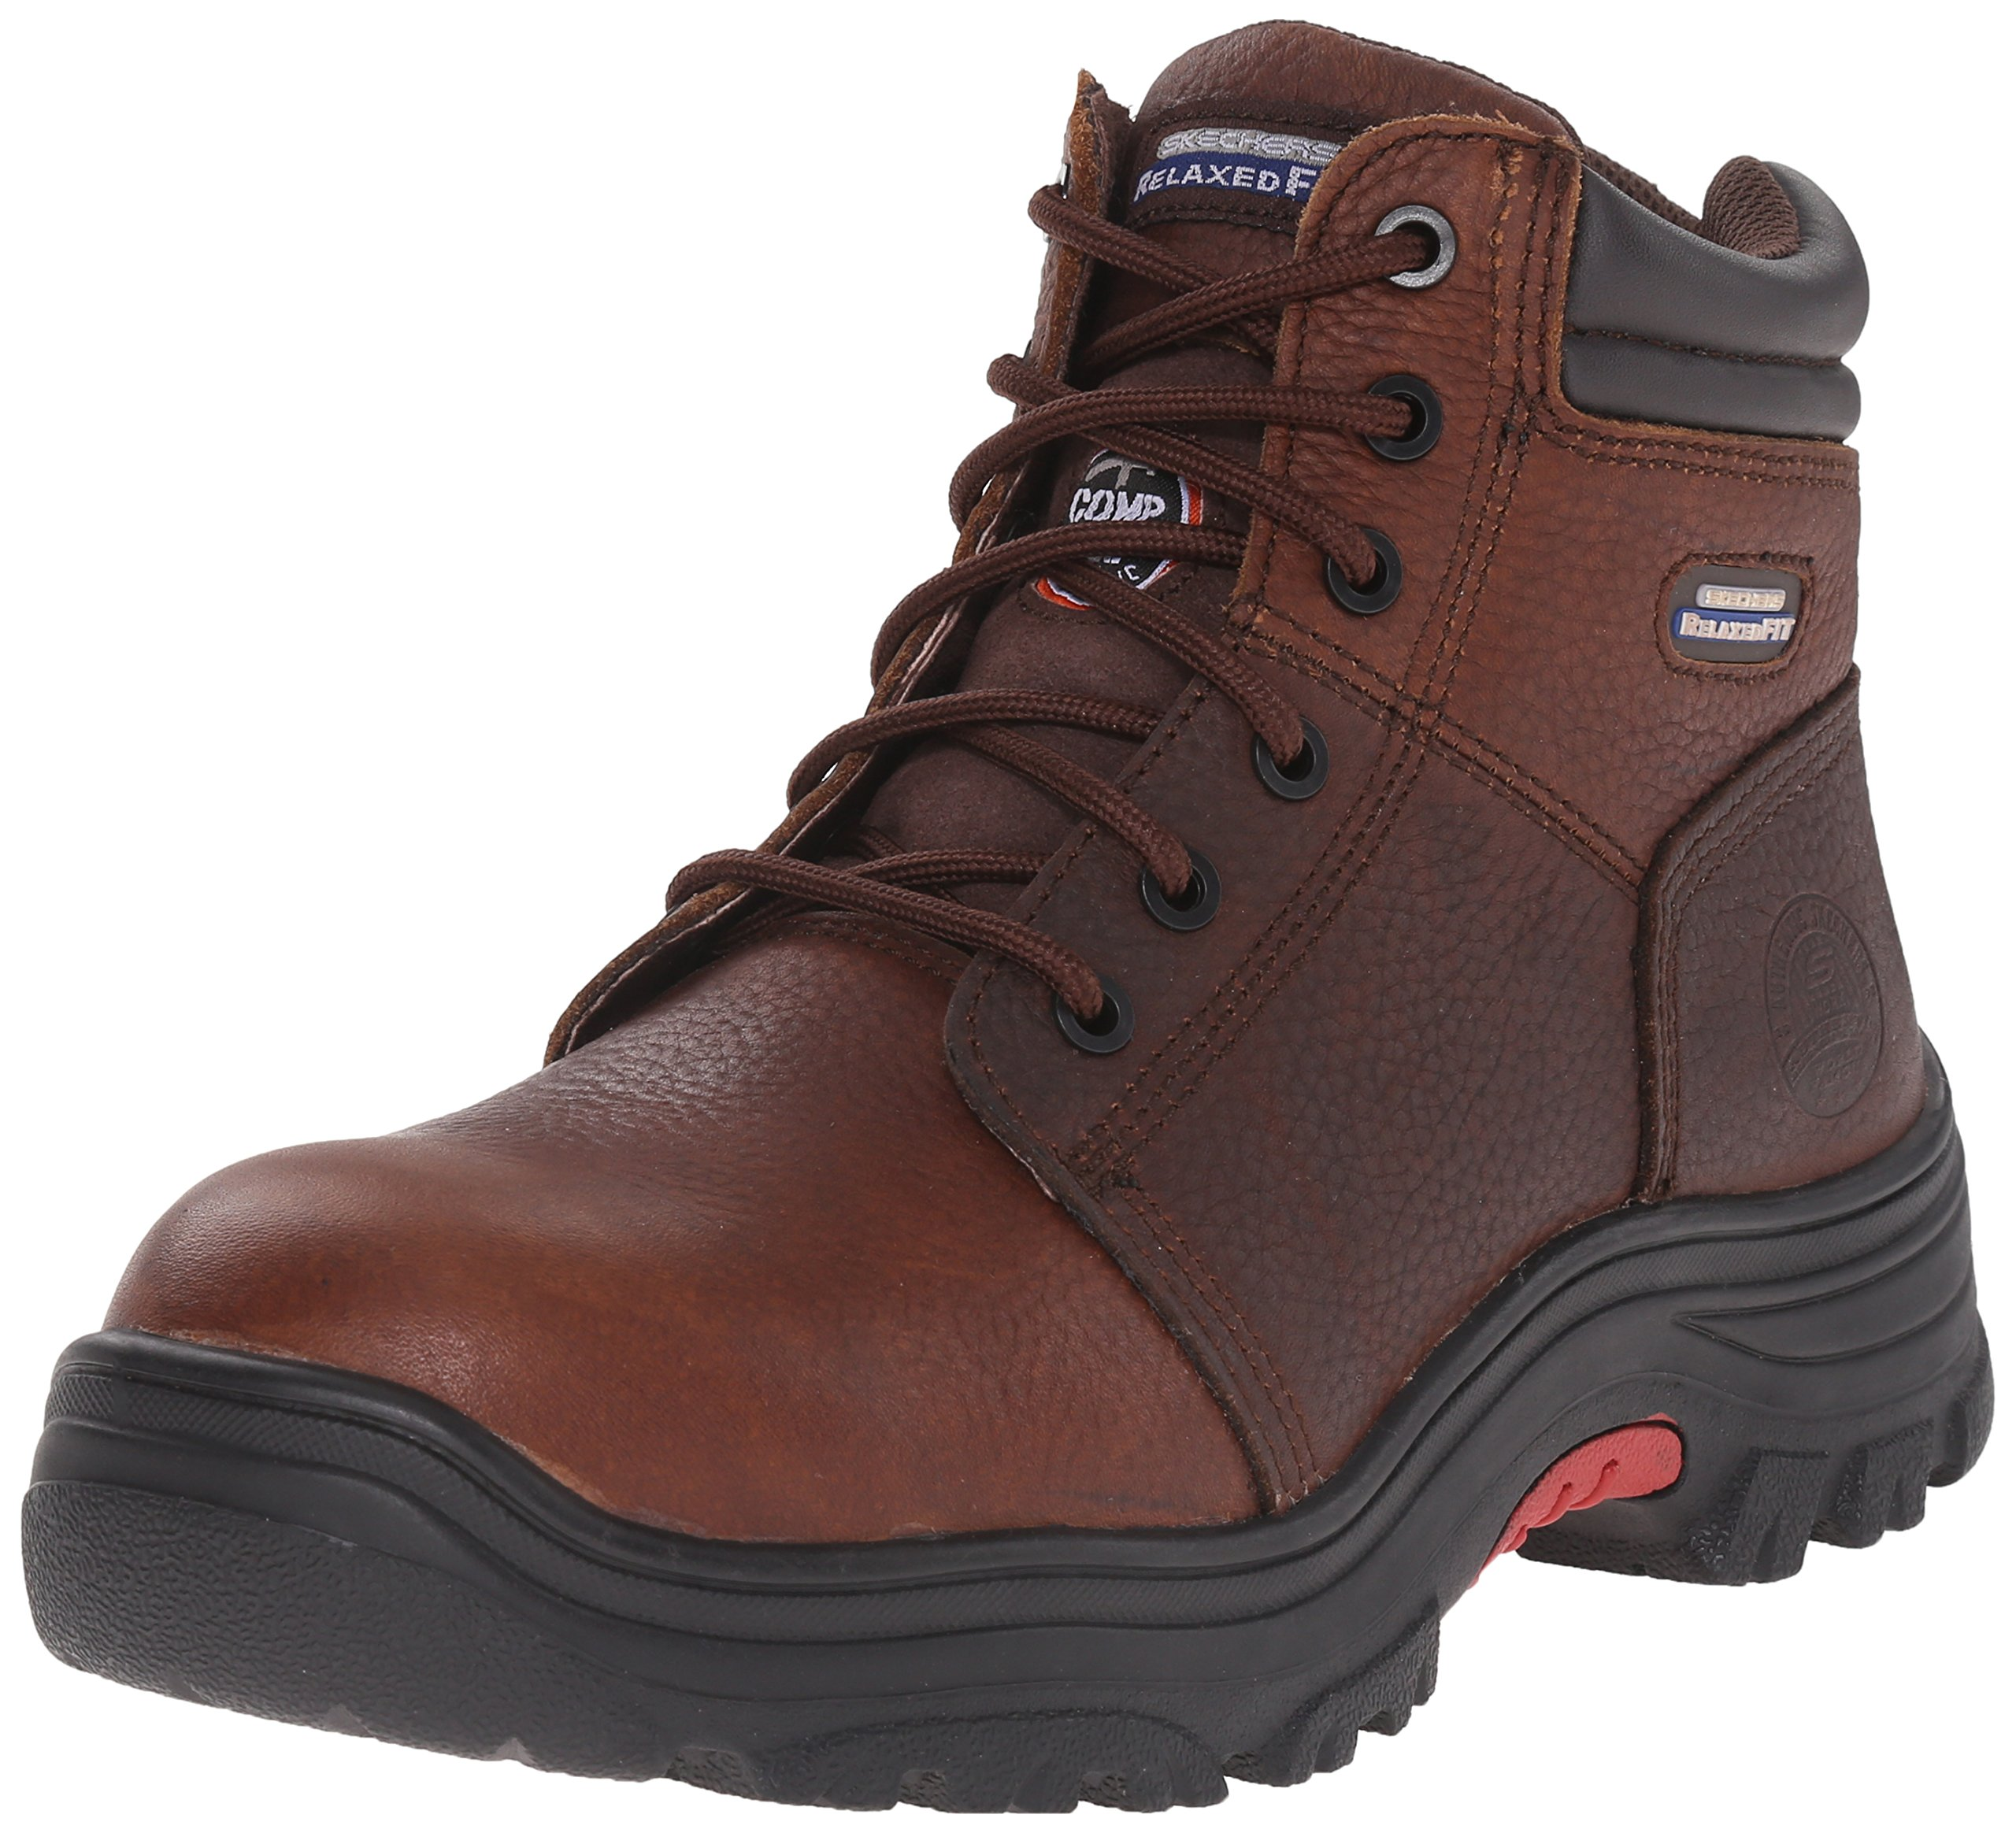 Skechers for Work Men's Burgin Work Boot,Dark Brown,7.5 M US